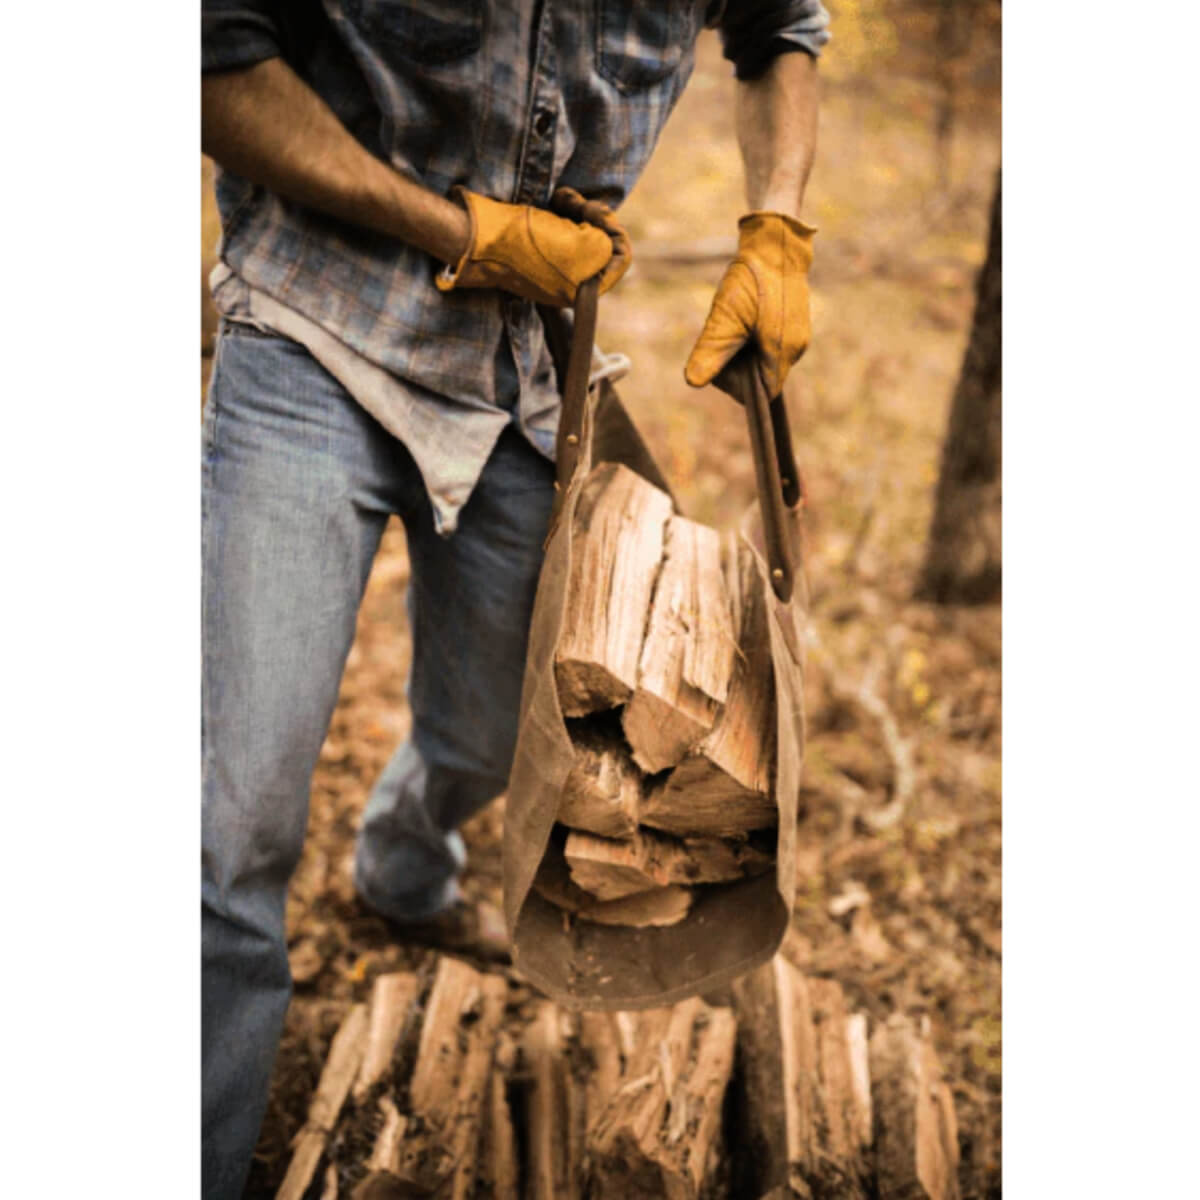 Frost River Firewood Sling